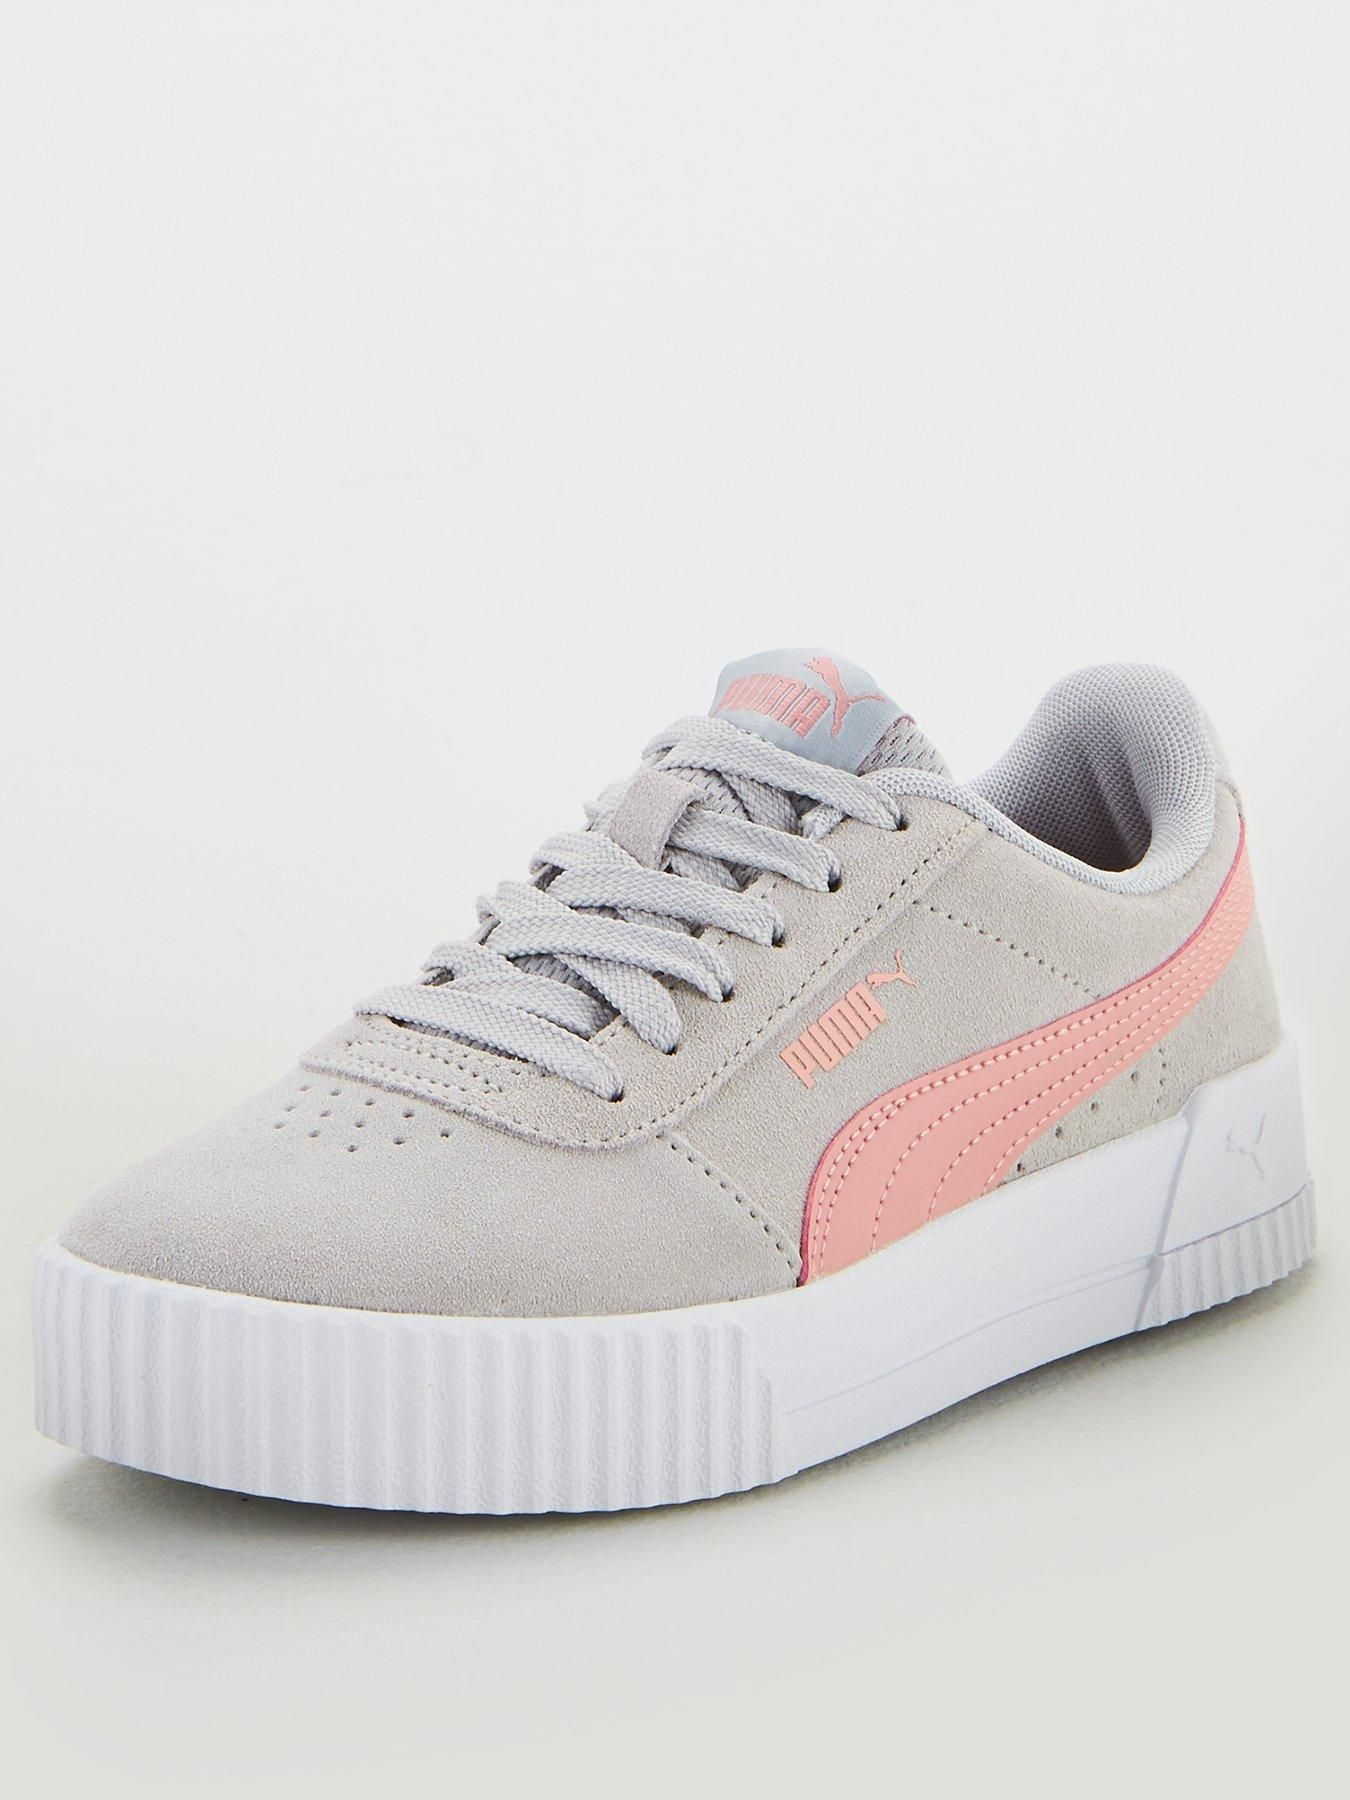 Carina Junior Trainers GreyPink | Trainers, Pumas shoes